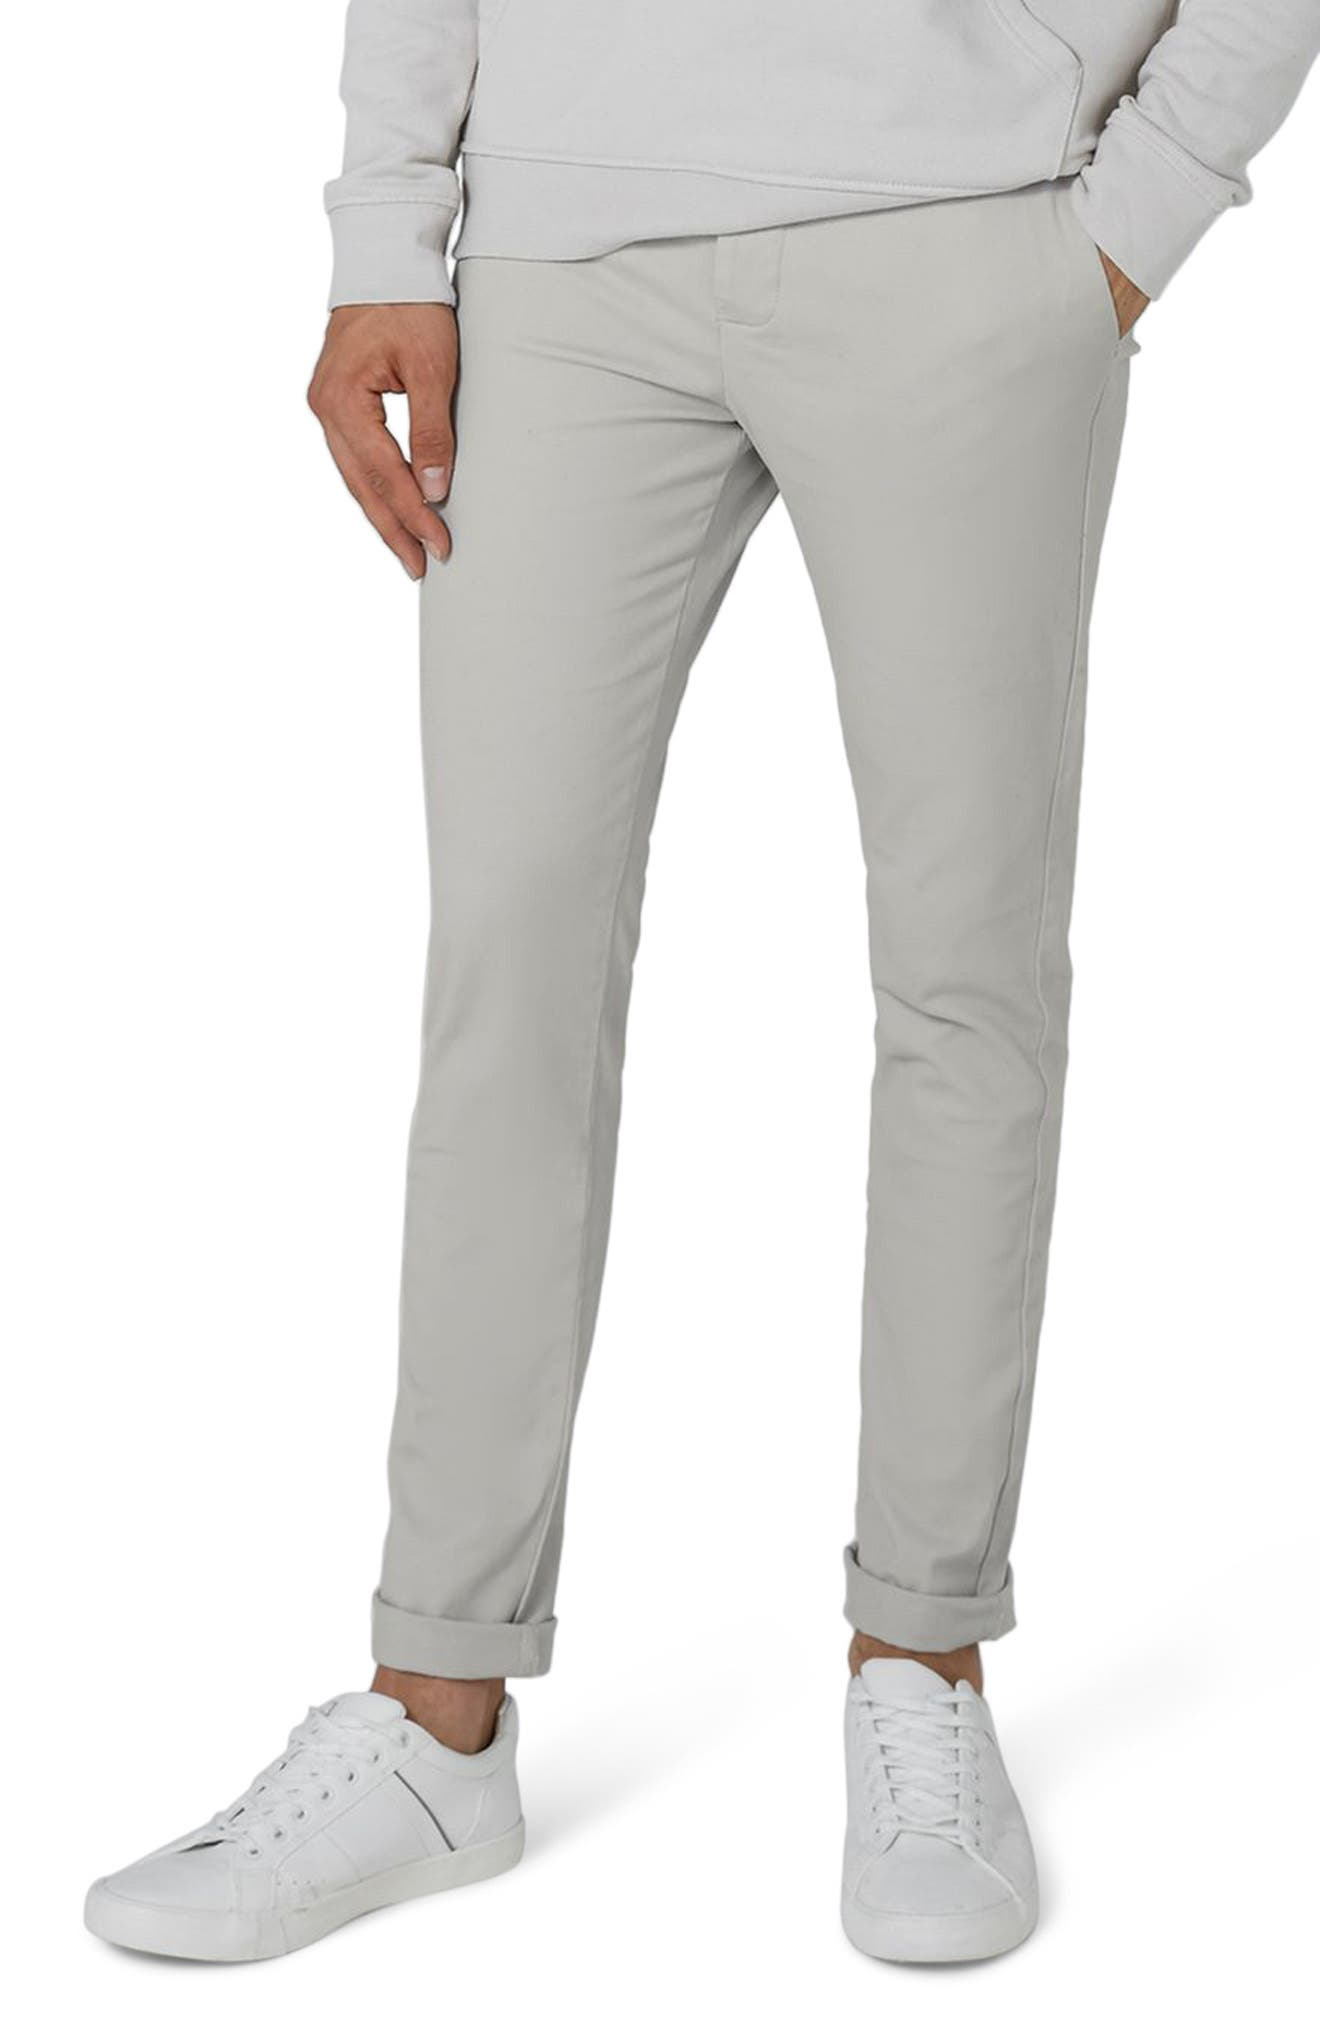 Stretch Skinny Fit Chinos,                             Main thumbnail 1, color,                             020